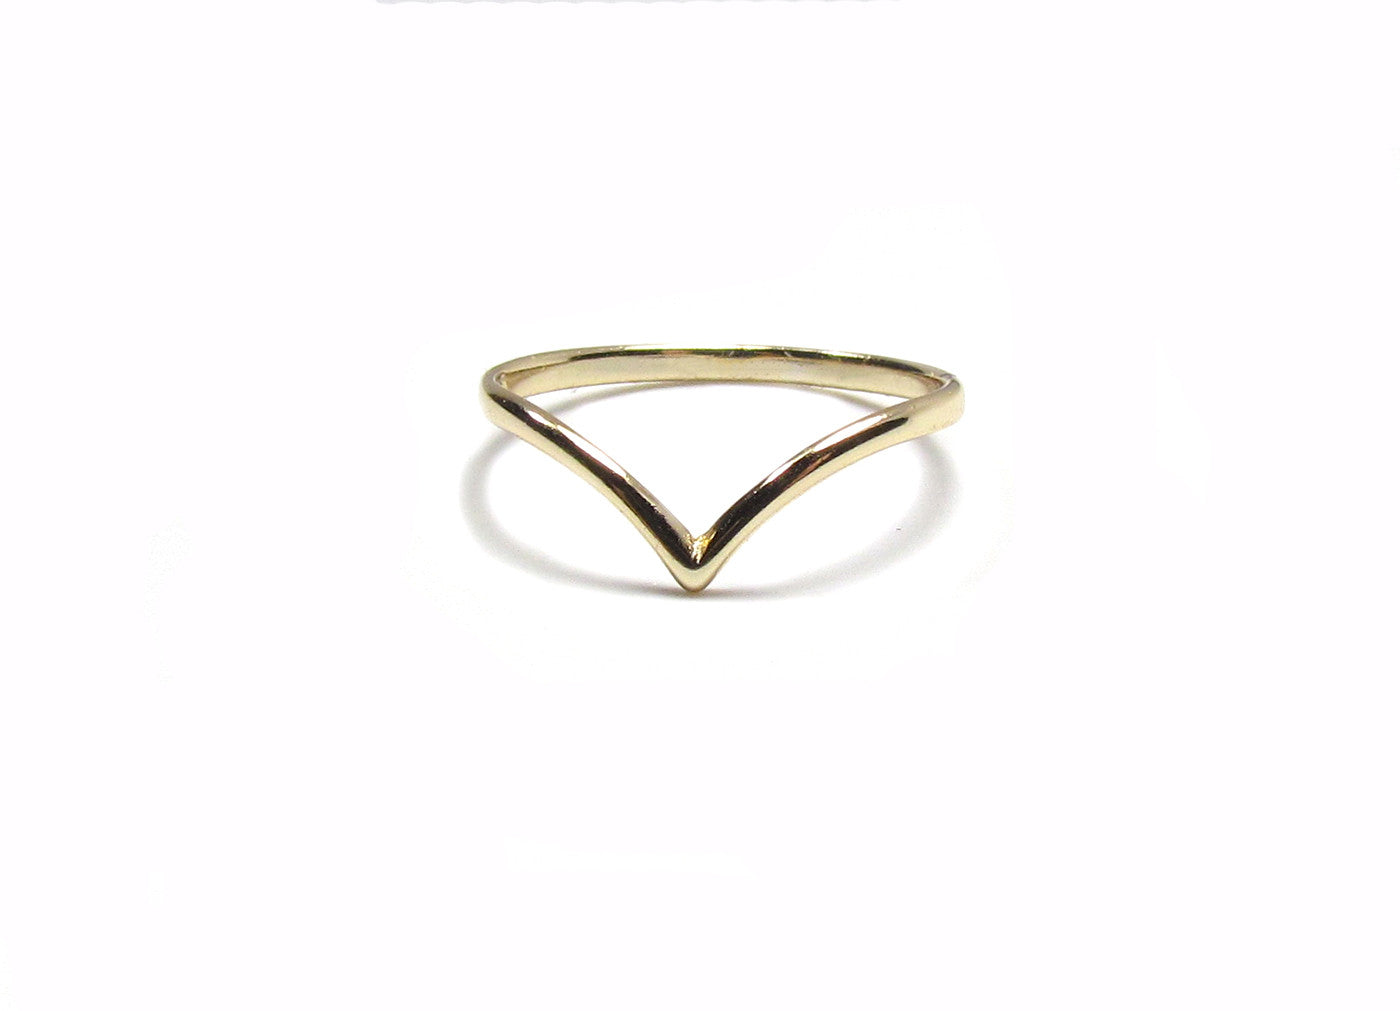 Polished Chevron Band Ring